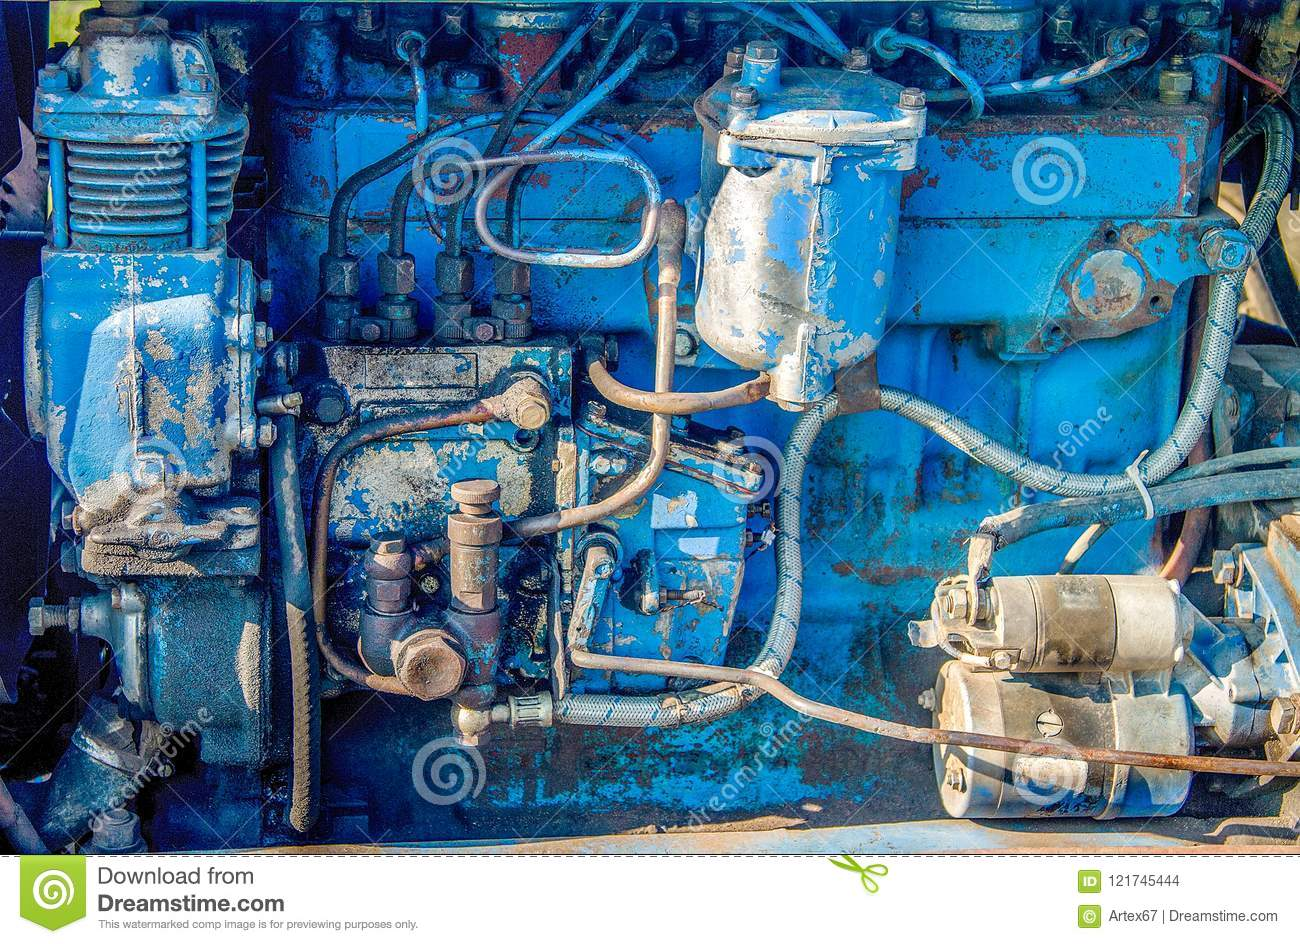 Old Dirty Blue Tractor Engine Stock Photo Image Of Industrial Electrical Wiring An